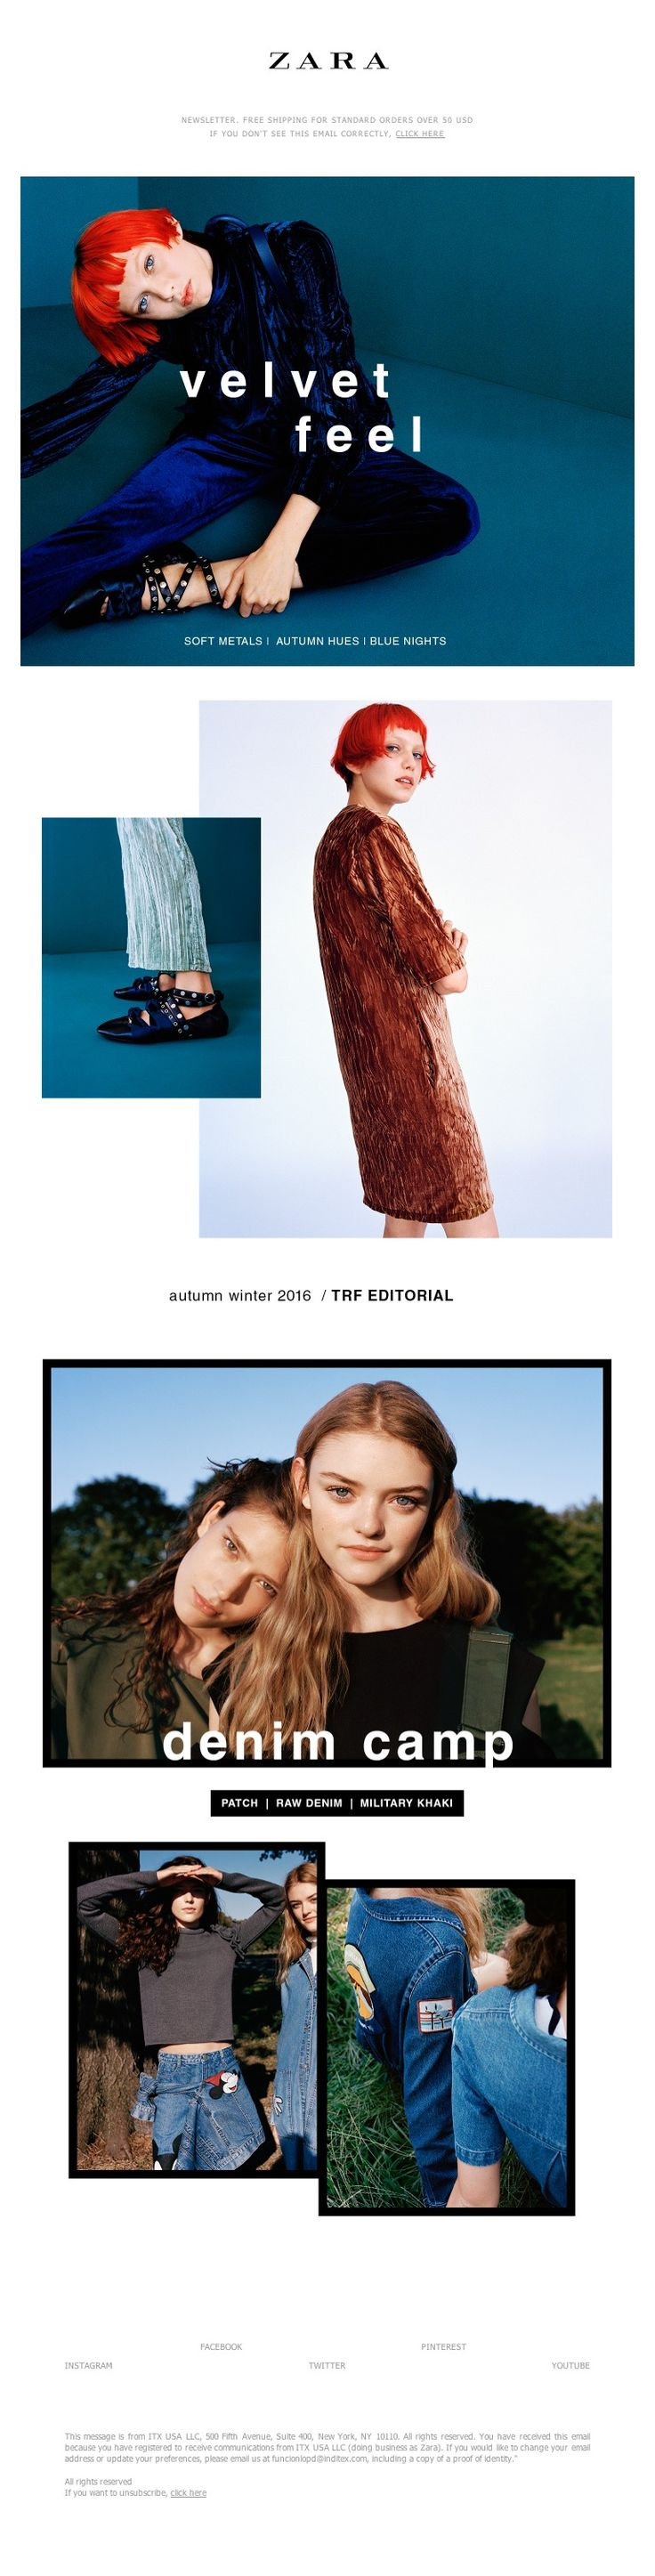 ZARA - TRF velvet feel | denim camp. New editorials